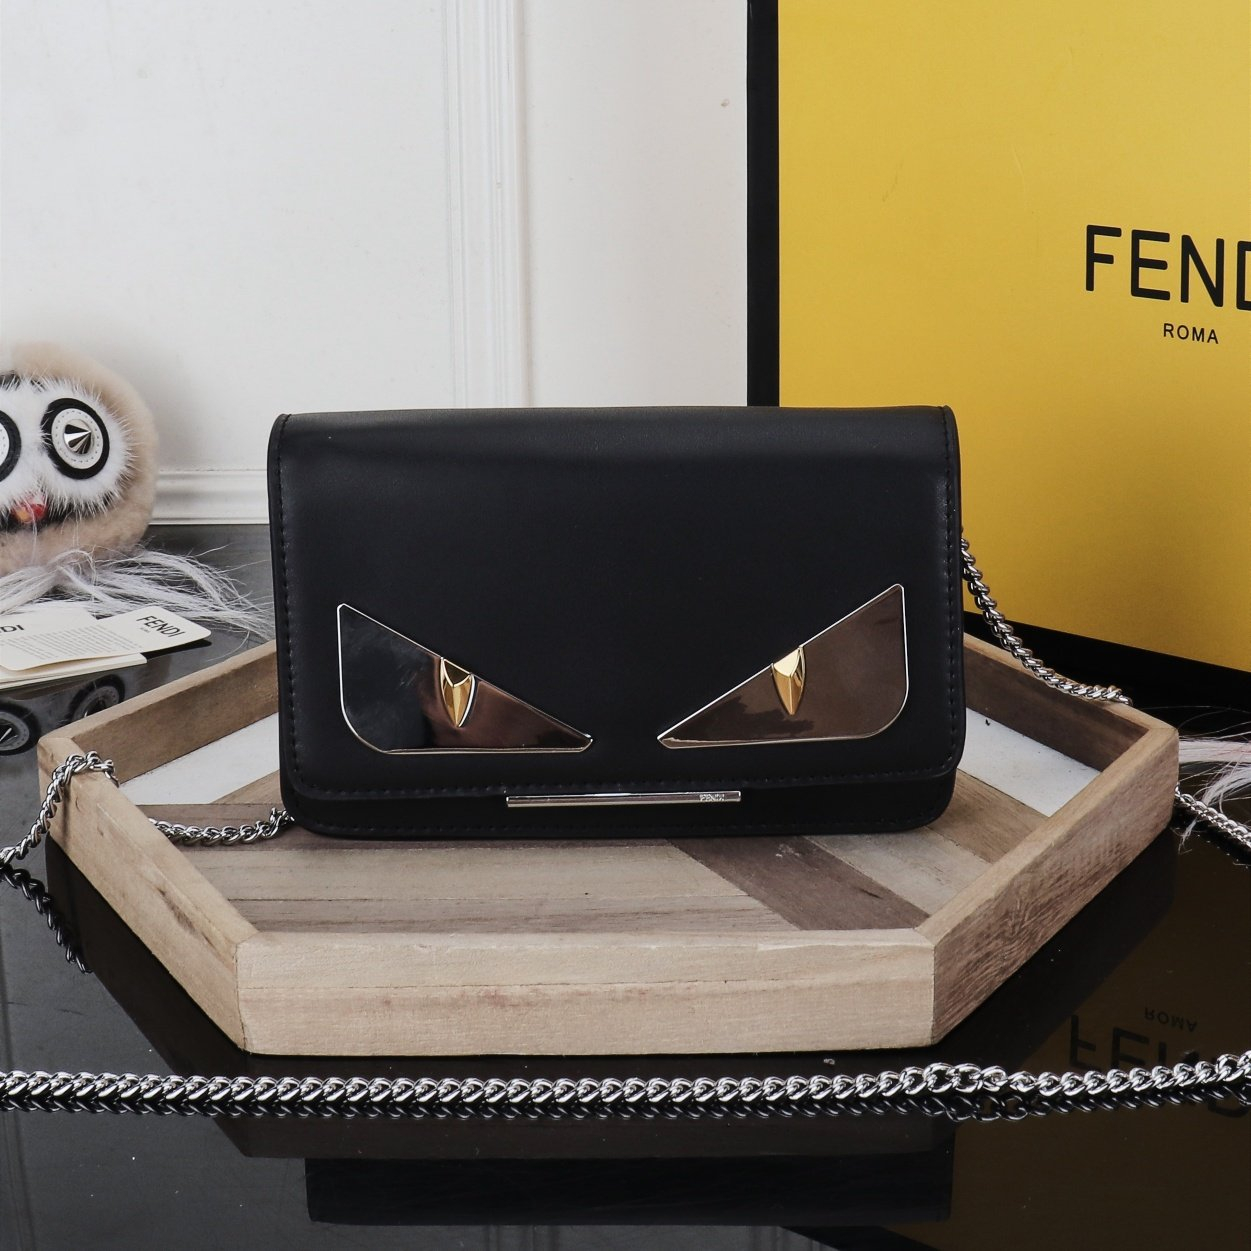 Image of FENDI WOMEN'S LEATHER INCLINED CHAIN SHOULDER BAG